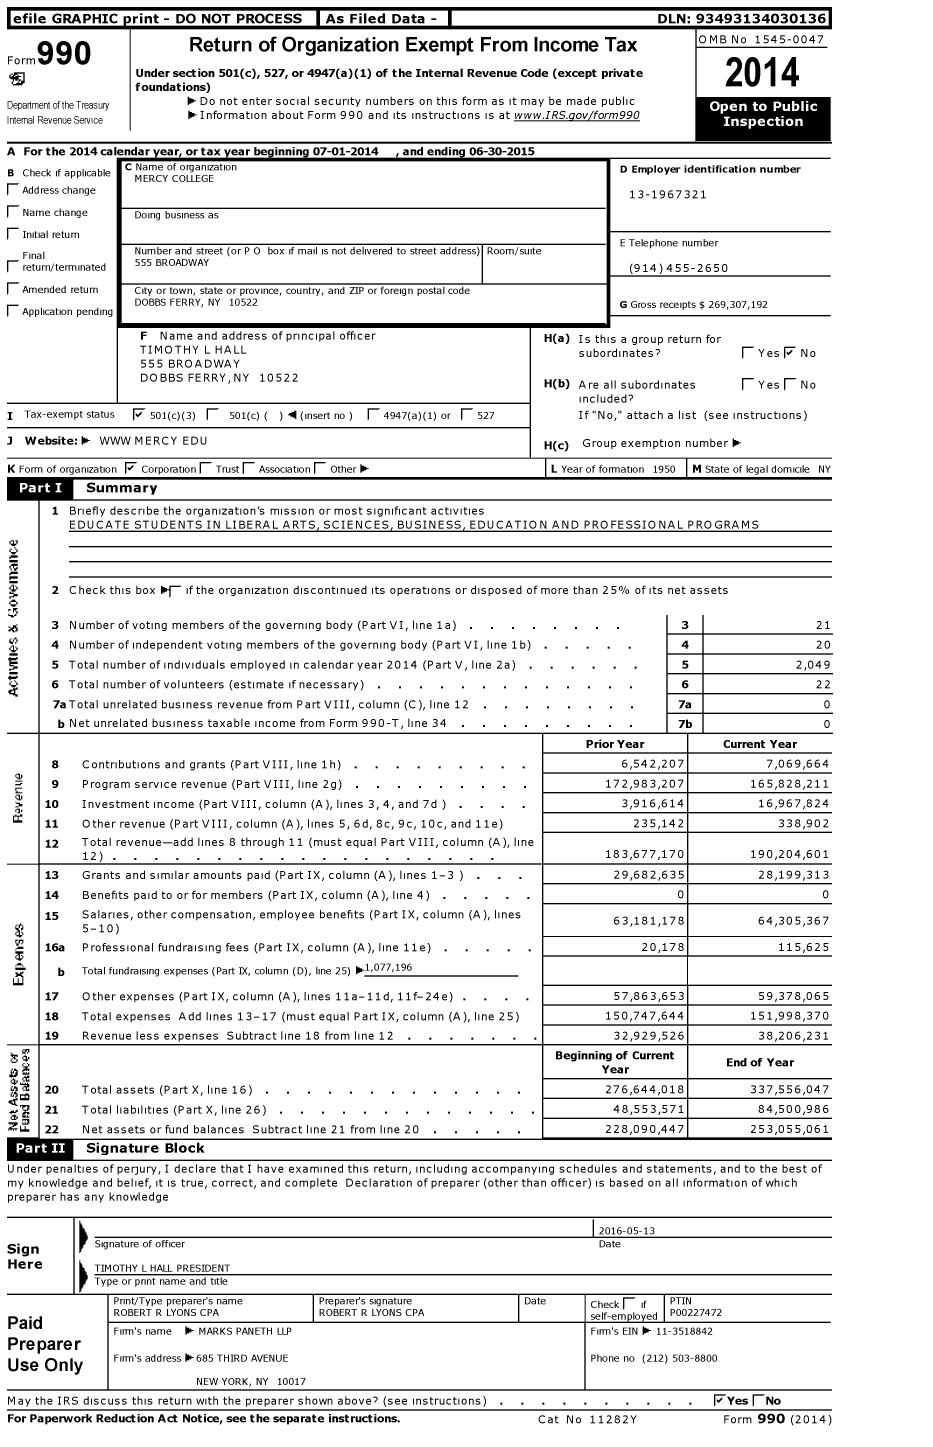 Image of first page of 2014 Form 990 for Mercy College